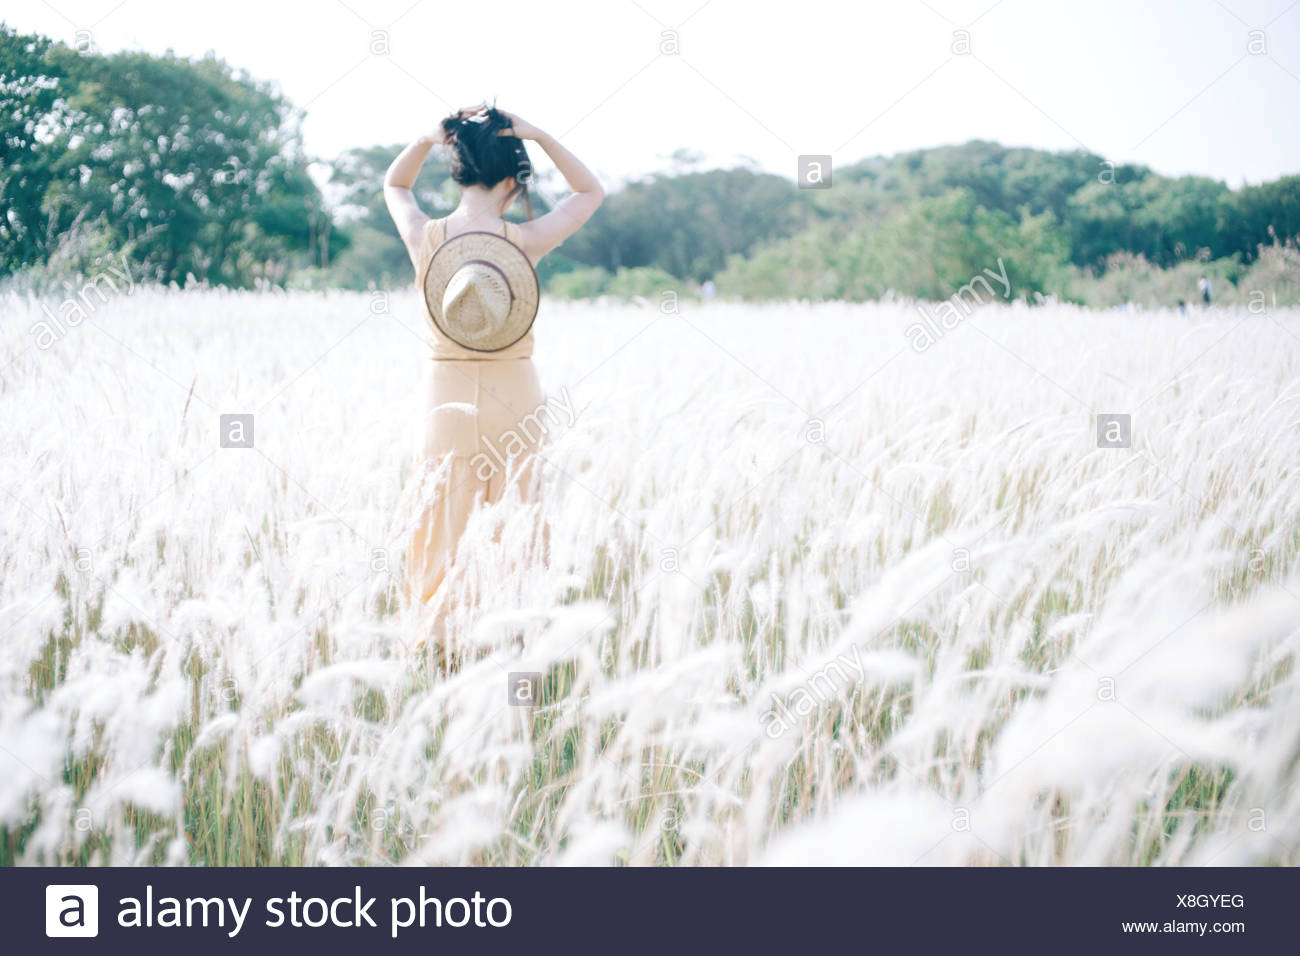 Rear View Of Teenage Girl Walking In Grass Field Stock Photo